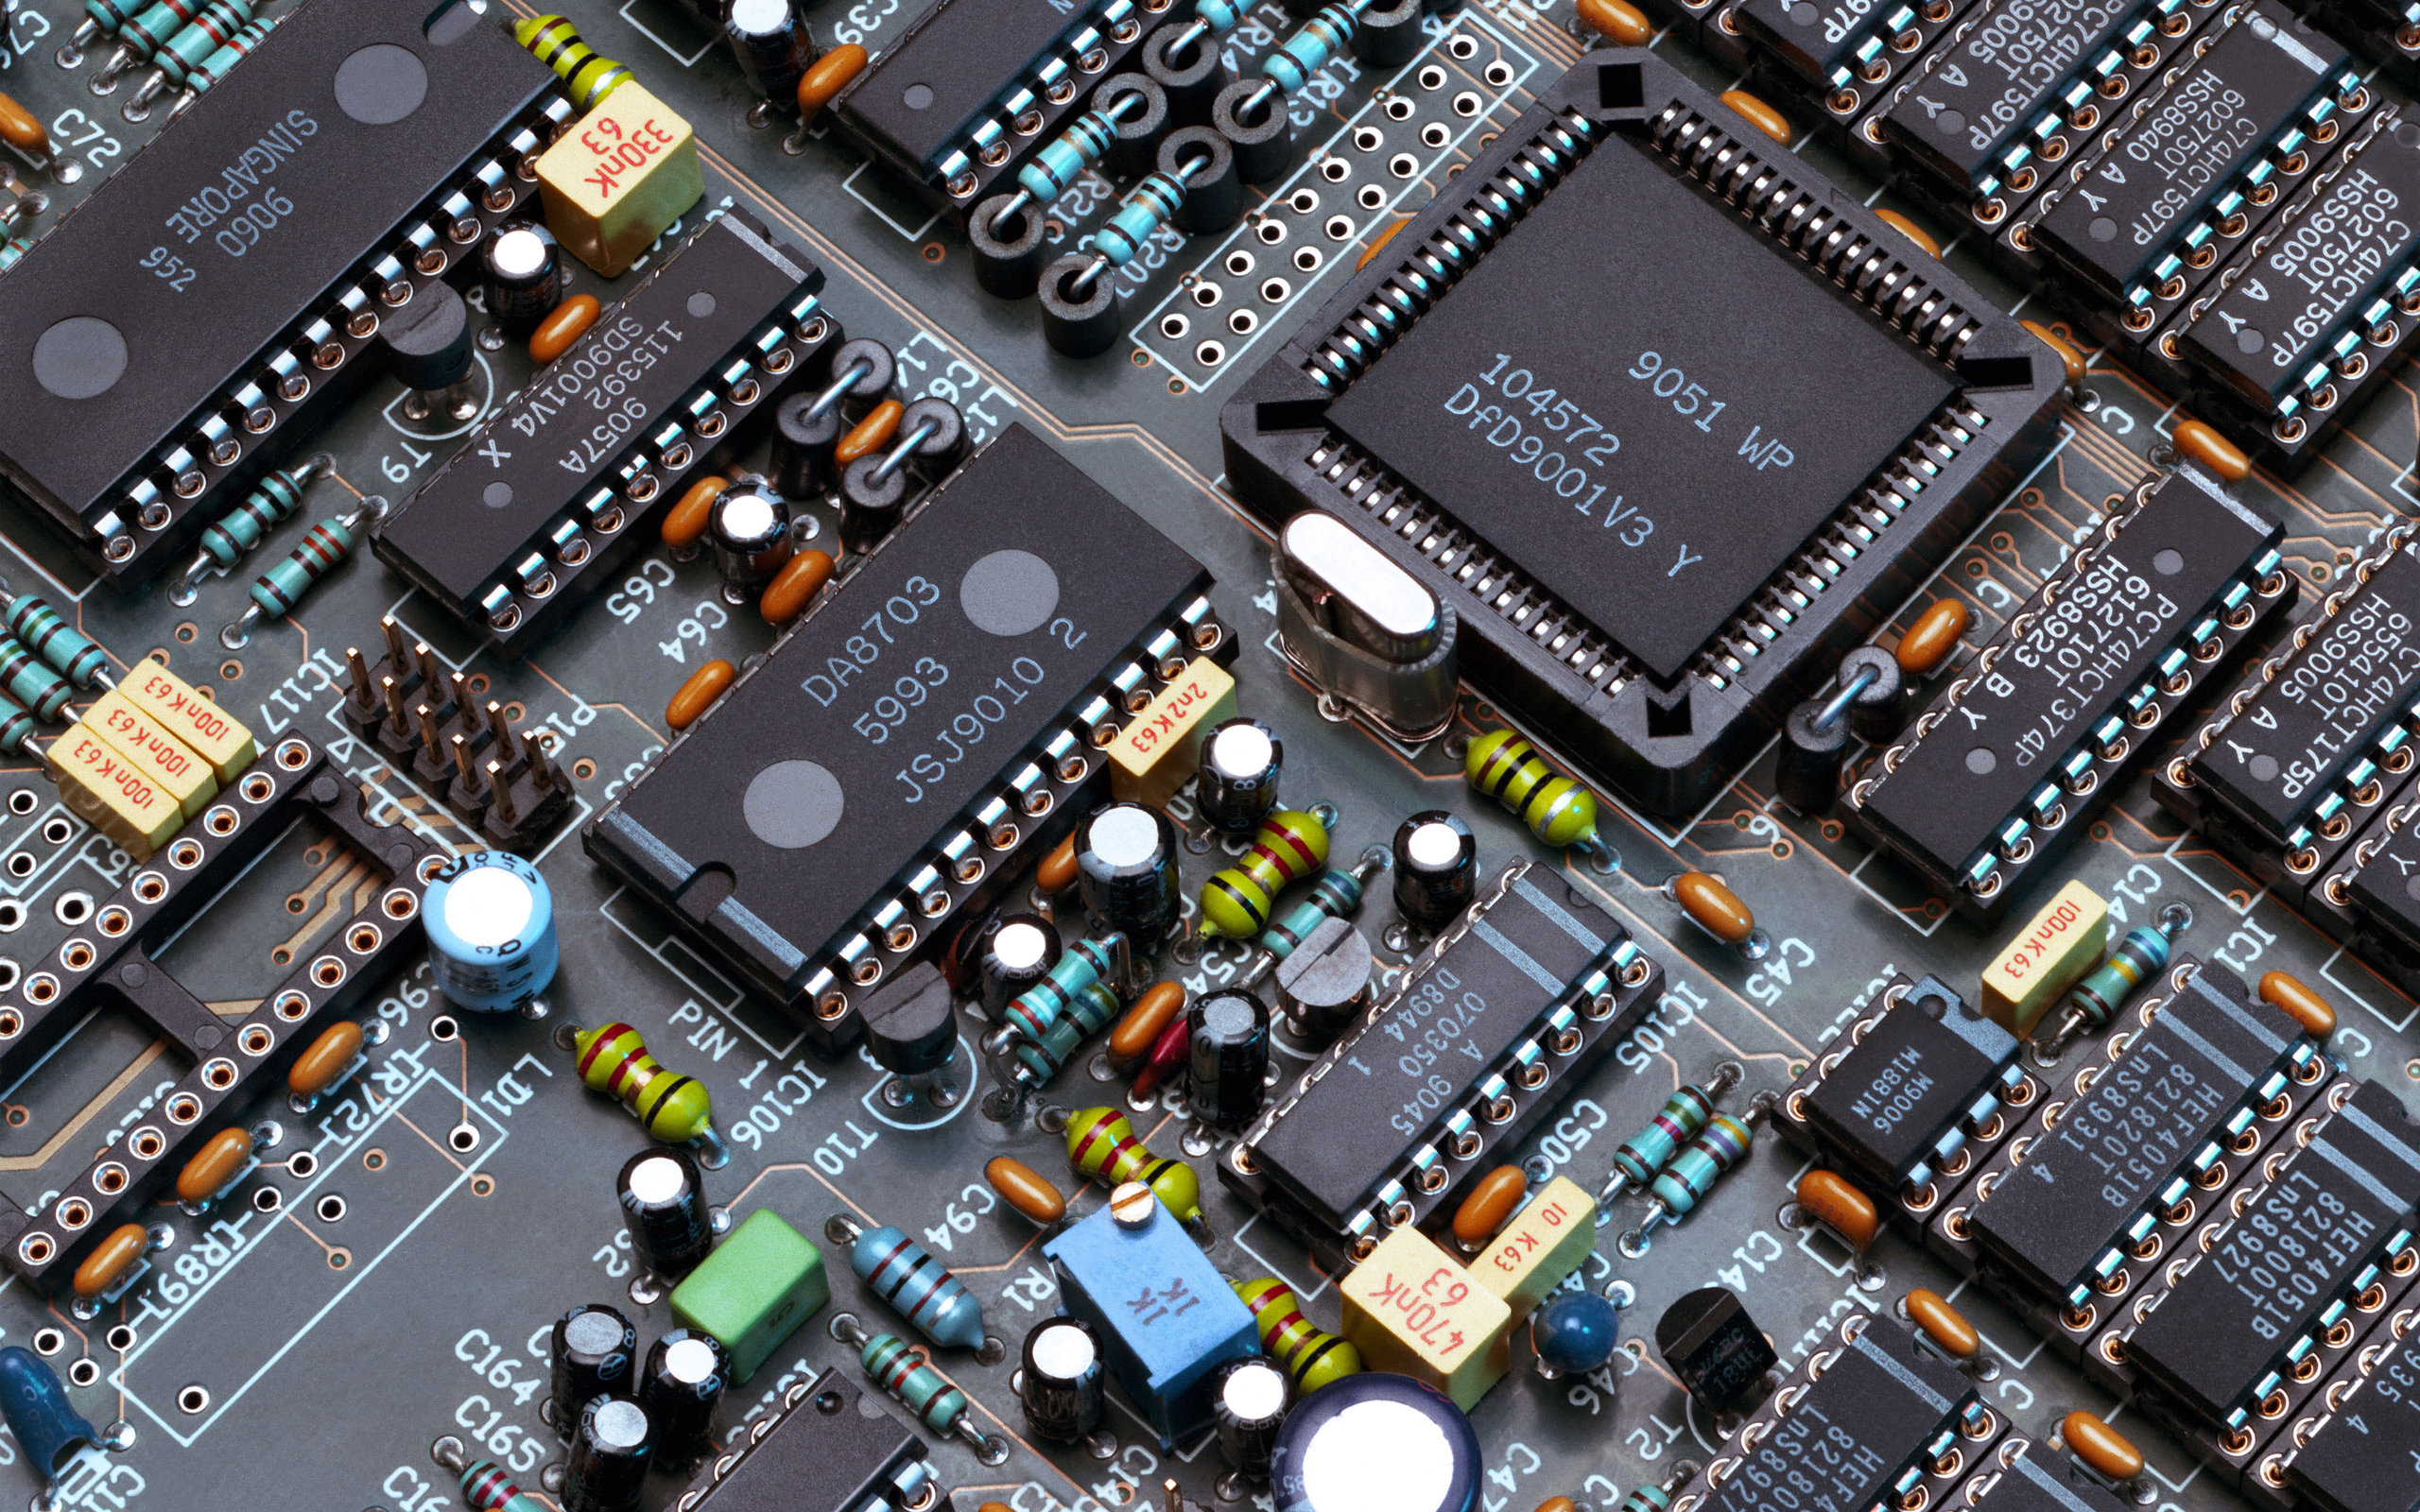 45 Electronics Wallpapers Hd On Wallpapersafari